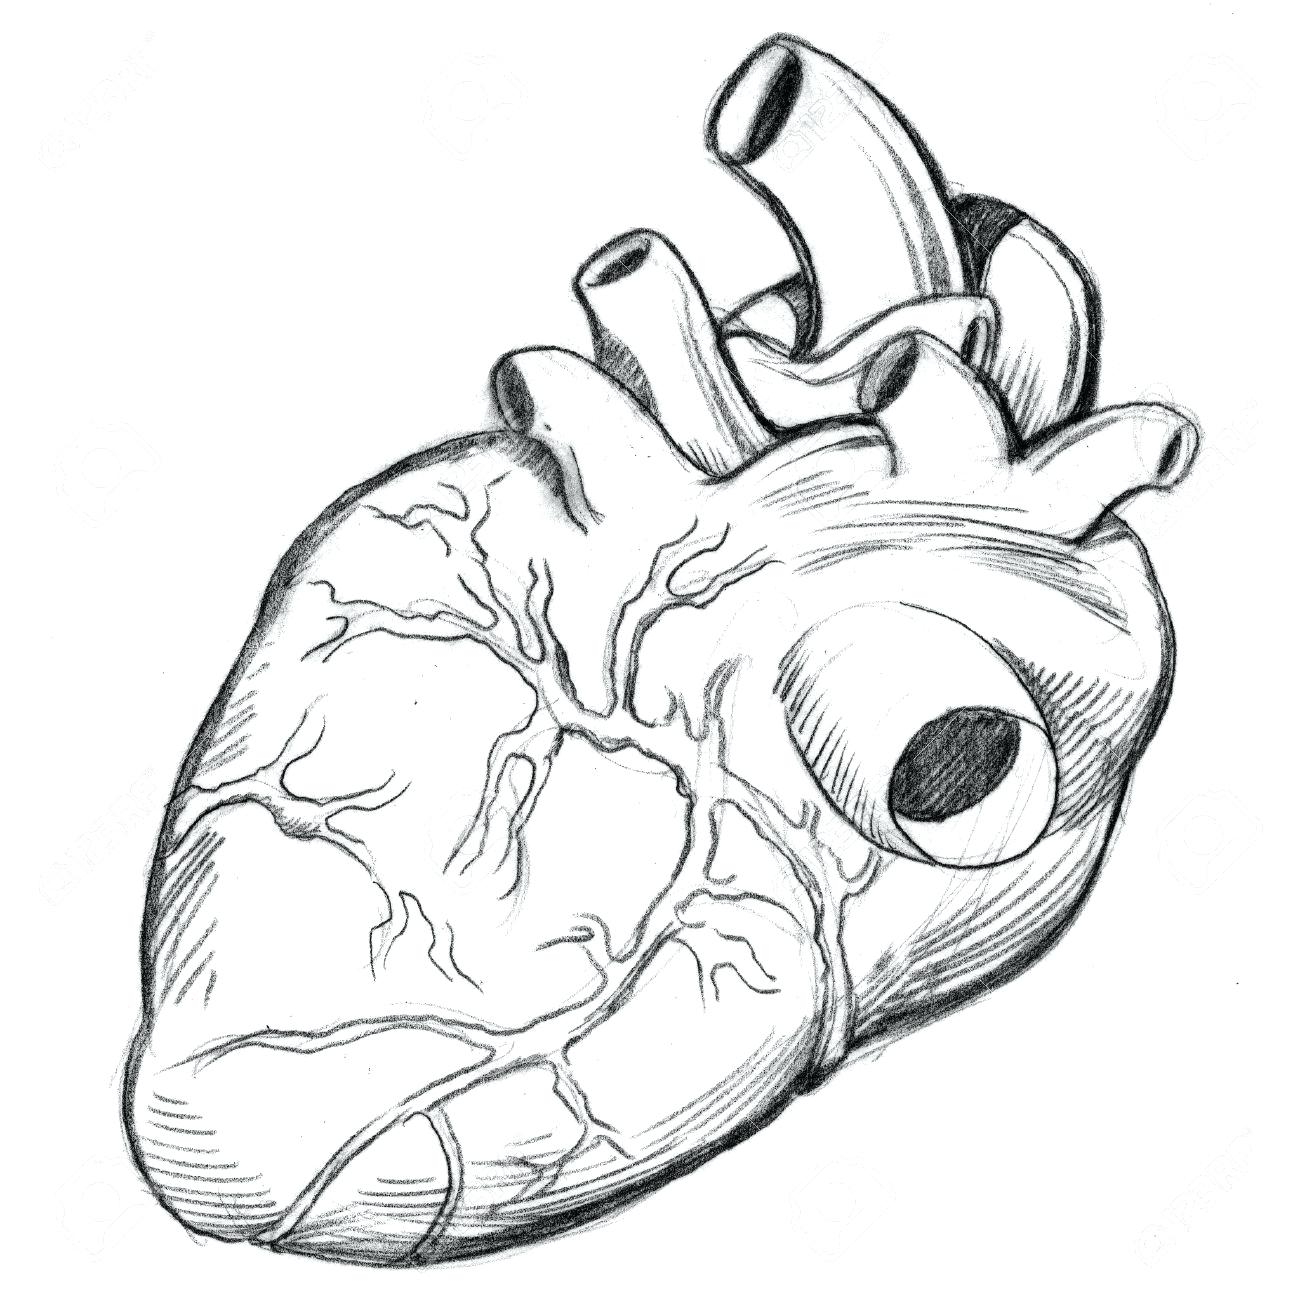 Human Heart Anatomy Drawing at GetDrawings | Free download